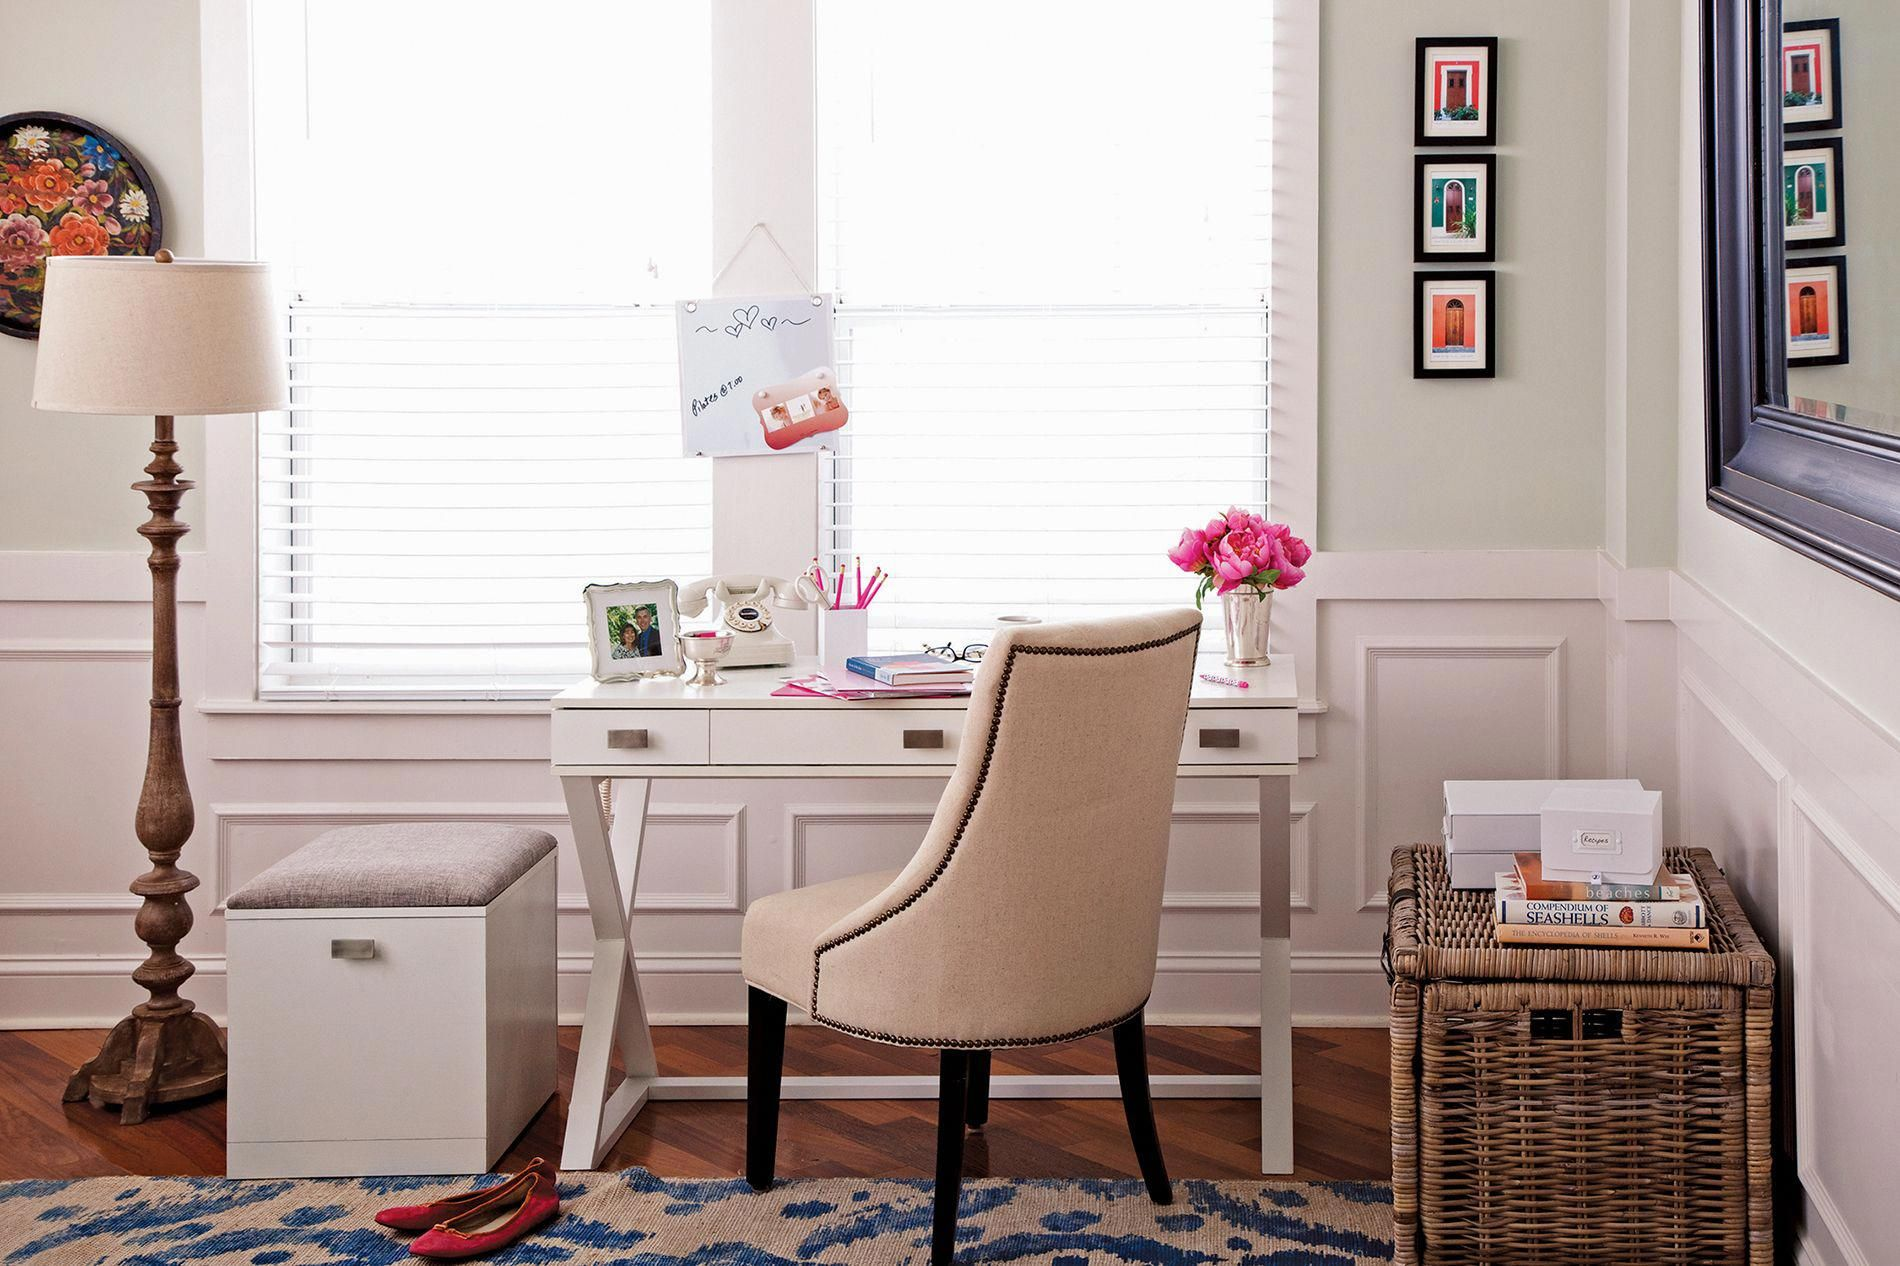 Refresh your home this spring with storage and